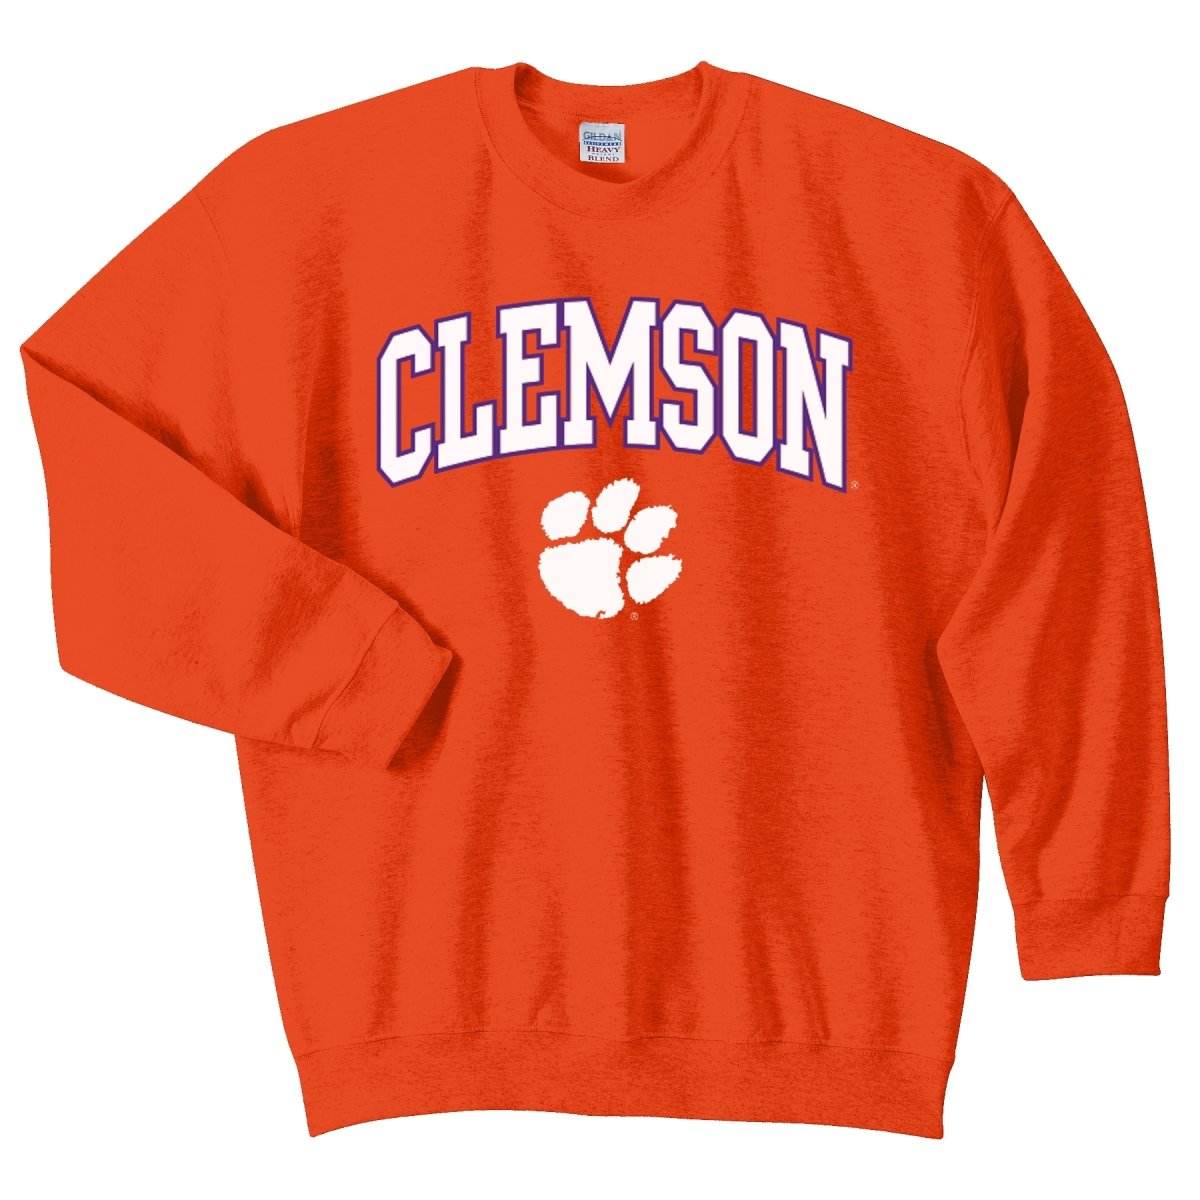 Clemson Tigers Toddler Crew Neck Sweater With Arch Over Paw - Mr. Knickerbocker